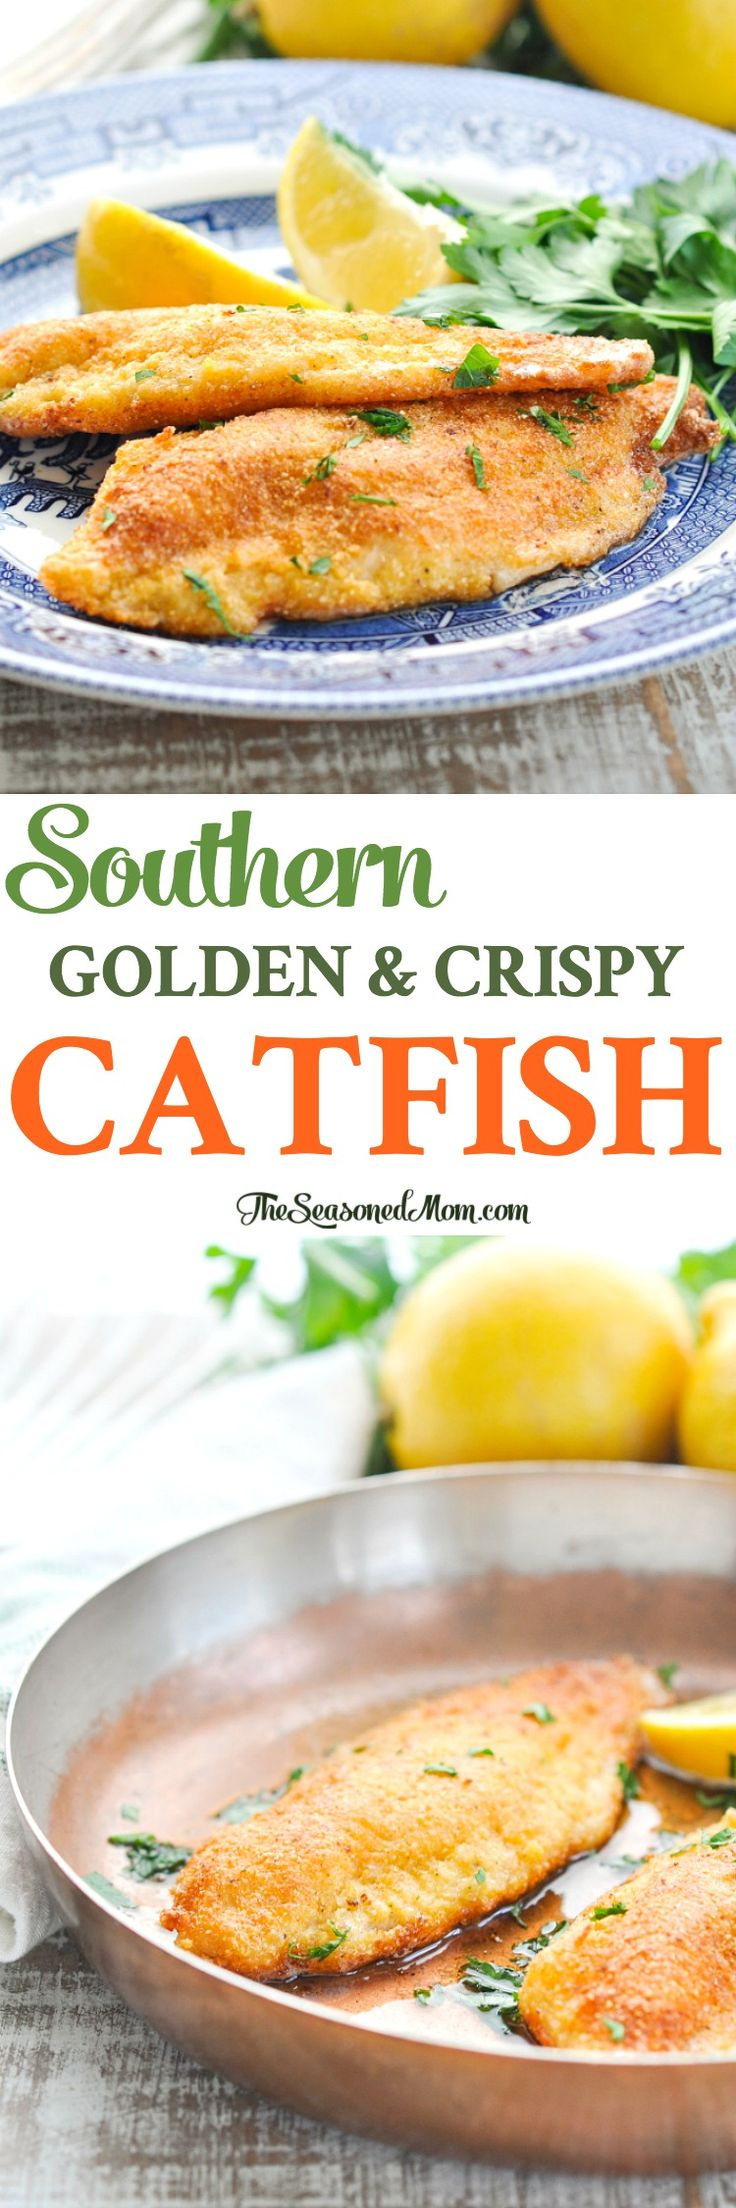 Simple is usually best, and this Southern Fried Catfish is no exception. The easy dinner recipe only requires a handful of pantry staples and it's ready in less than 20 minutes!!! #fish #seafood #dinner #TheSeasonedMom Easy Dinner Recipes | Fish Recipes | Seafood Recipes